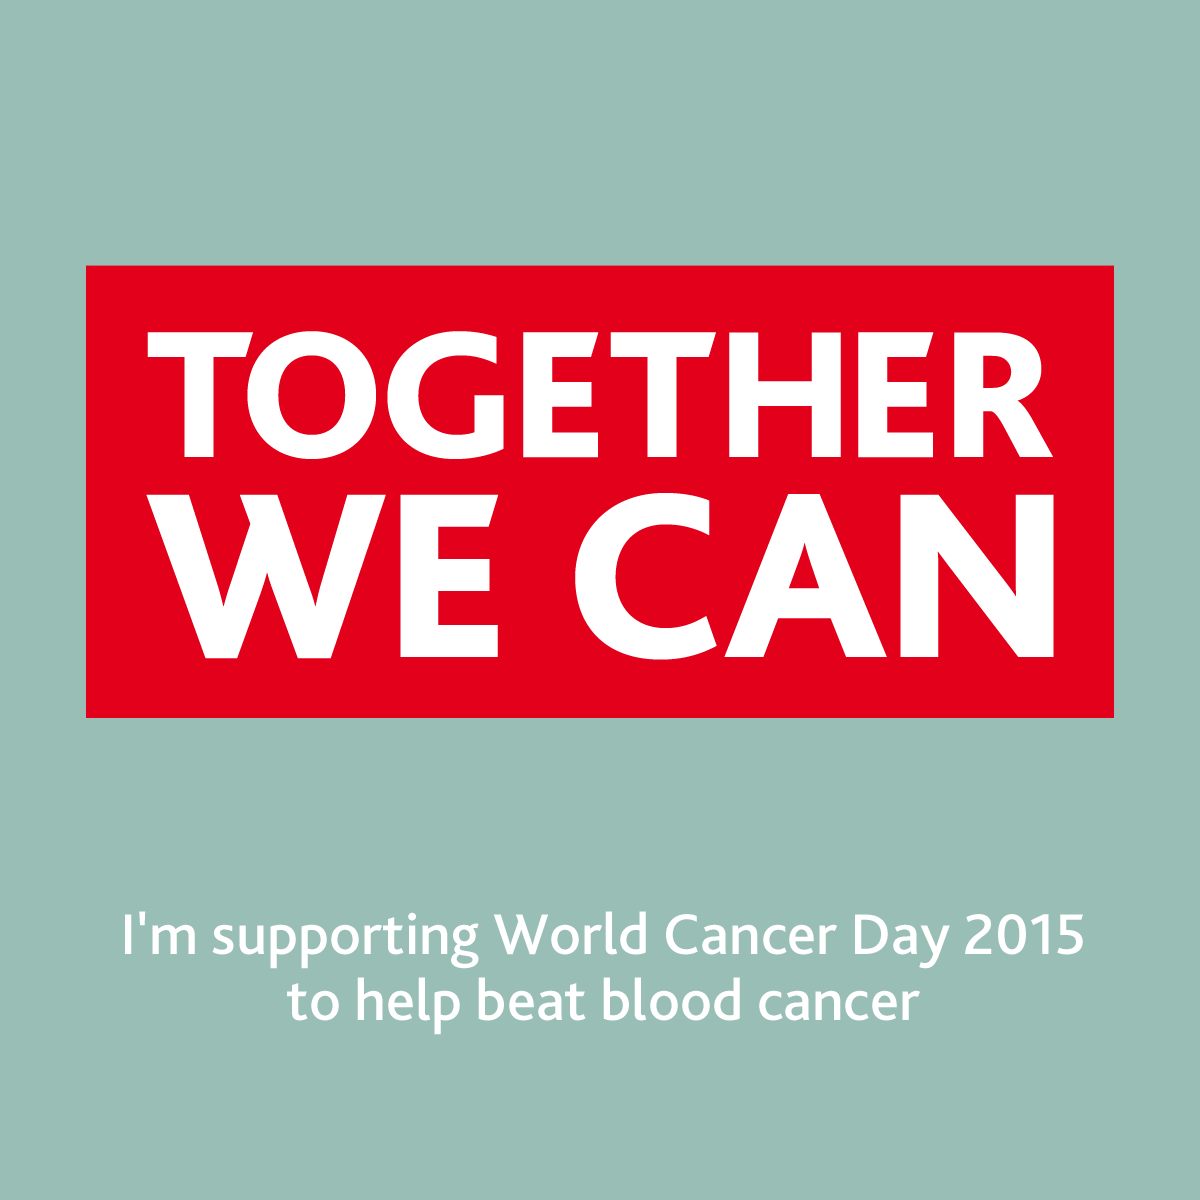 Today is #WorldCancerDay. RT to show your support & help spread the message that together we will beat blood cancer http://t.co/3H8sIGZQUd